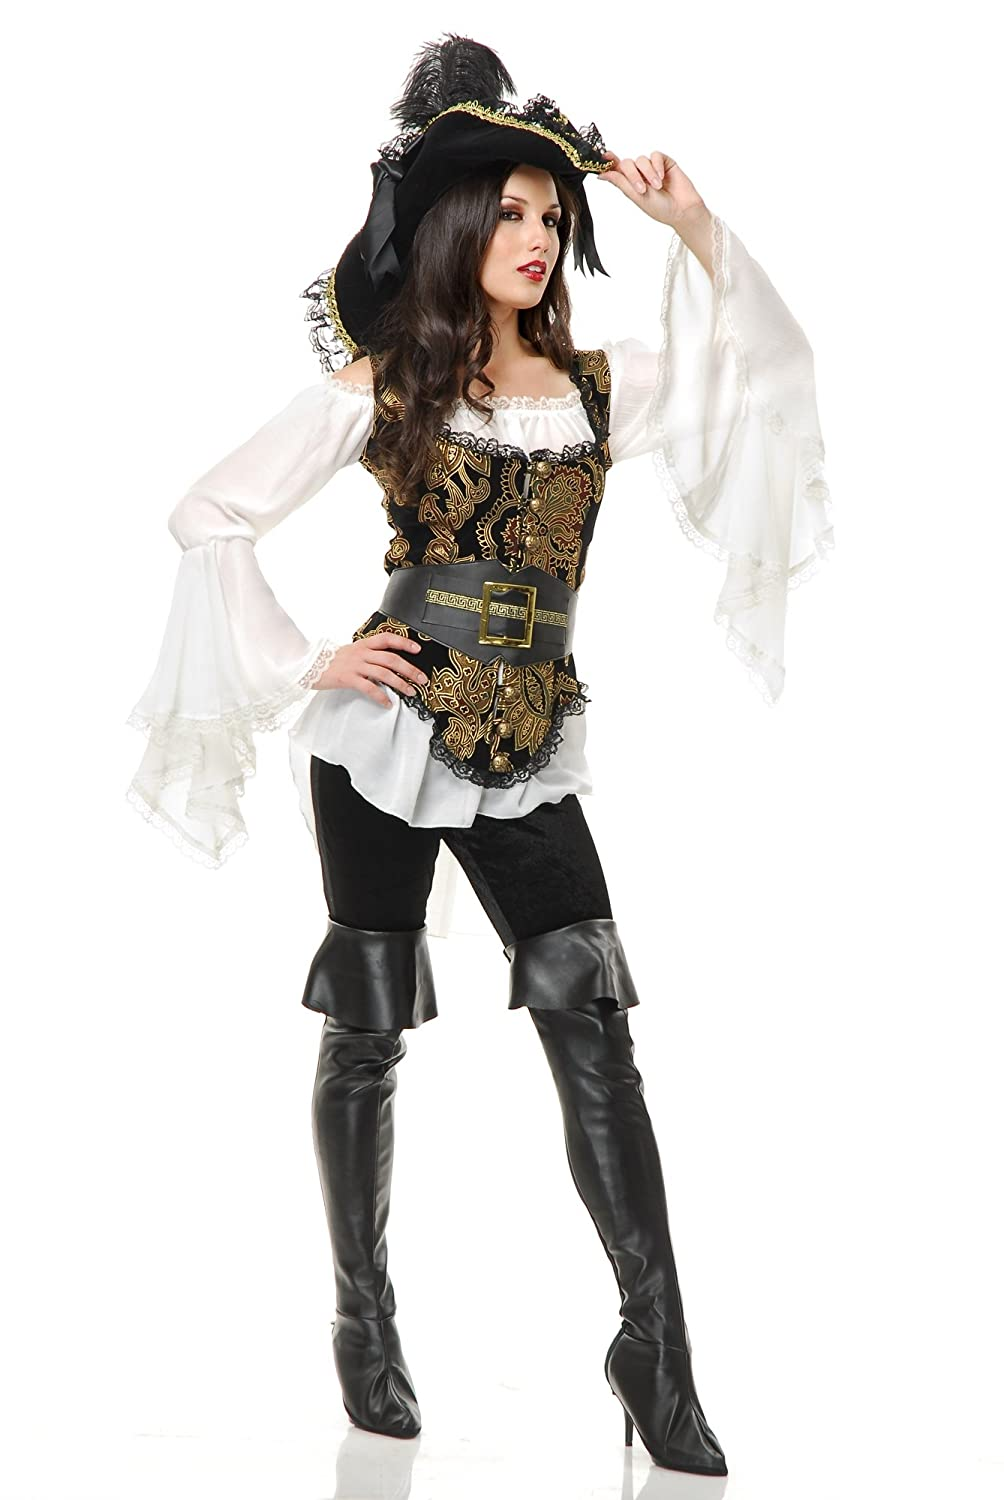 Women's Pirate Lady Black & Gold Vest, Blouse, and Belt Costume Set - DeluxeAdultCostumes.com